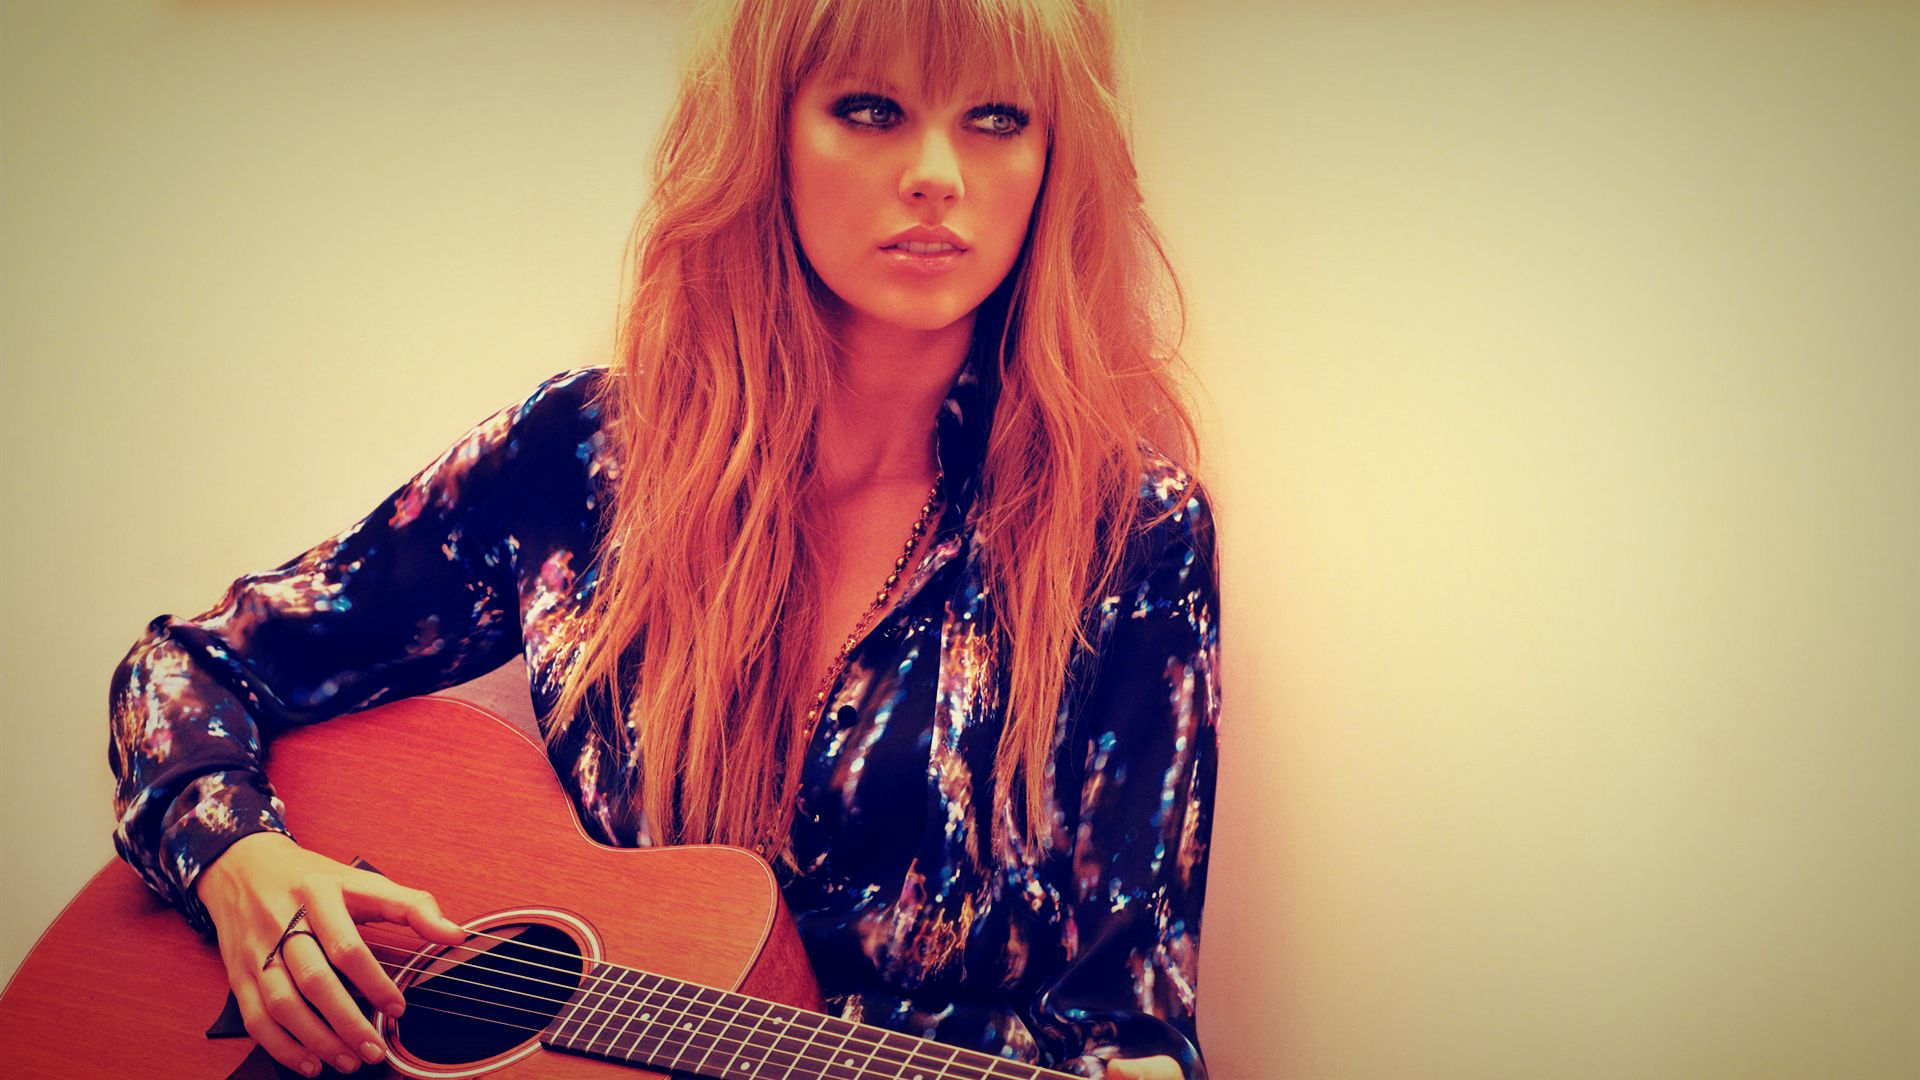 Photo-of-Taylor-Swift-with-Acoustic-Guitar-HD-Wallpaper ...Taylor Swift Acoustic Guitar Wallpaper